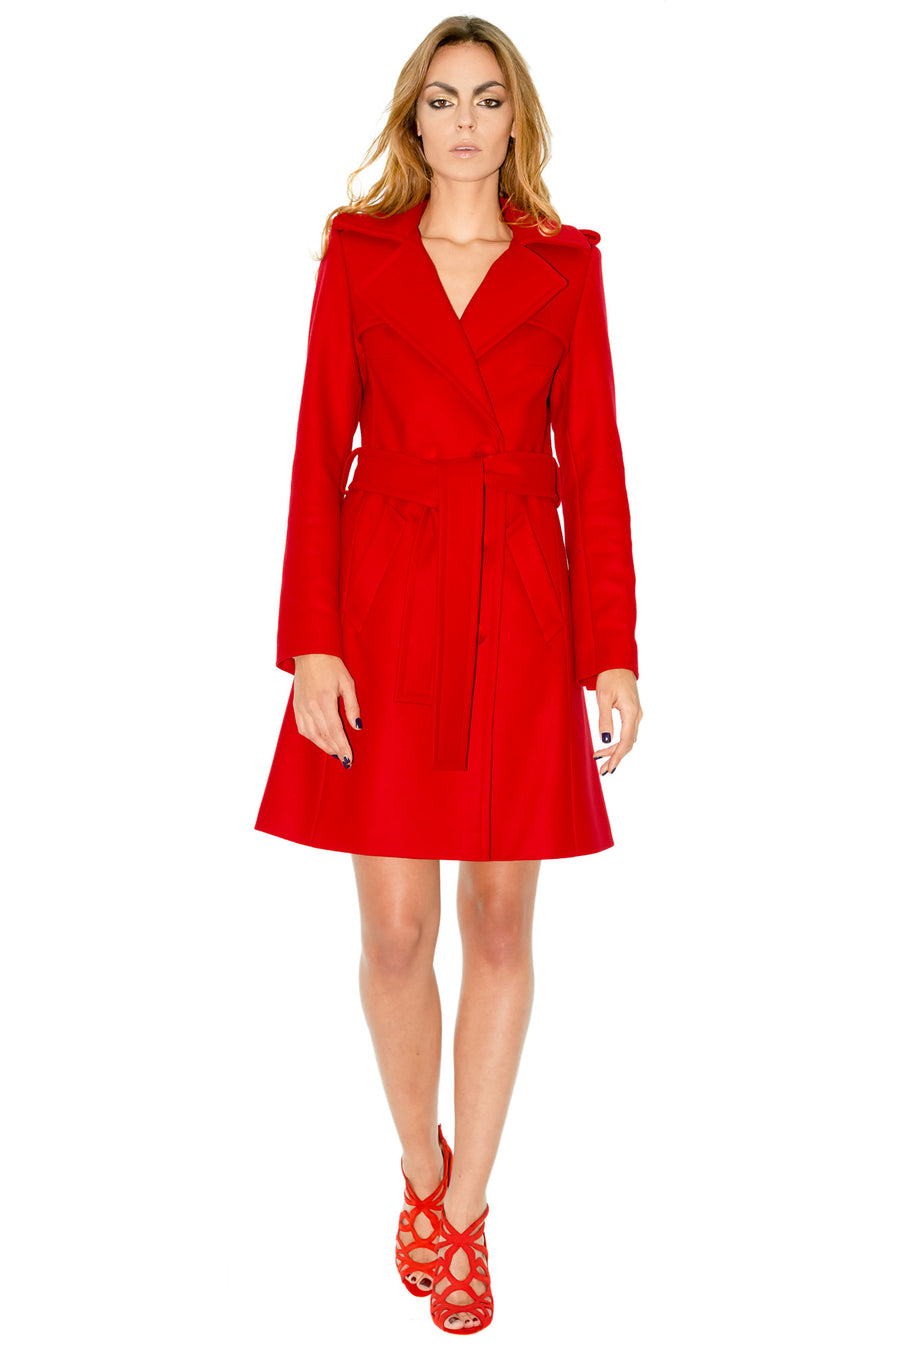 Stefanie Renoma-TO THE KNEE RED COAT IN CASHEMERE-Silkarmour-1